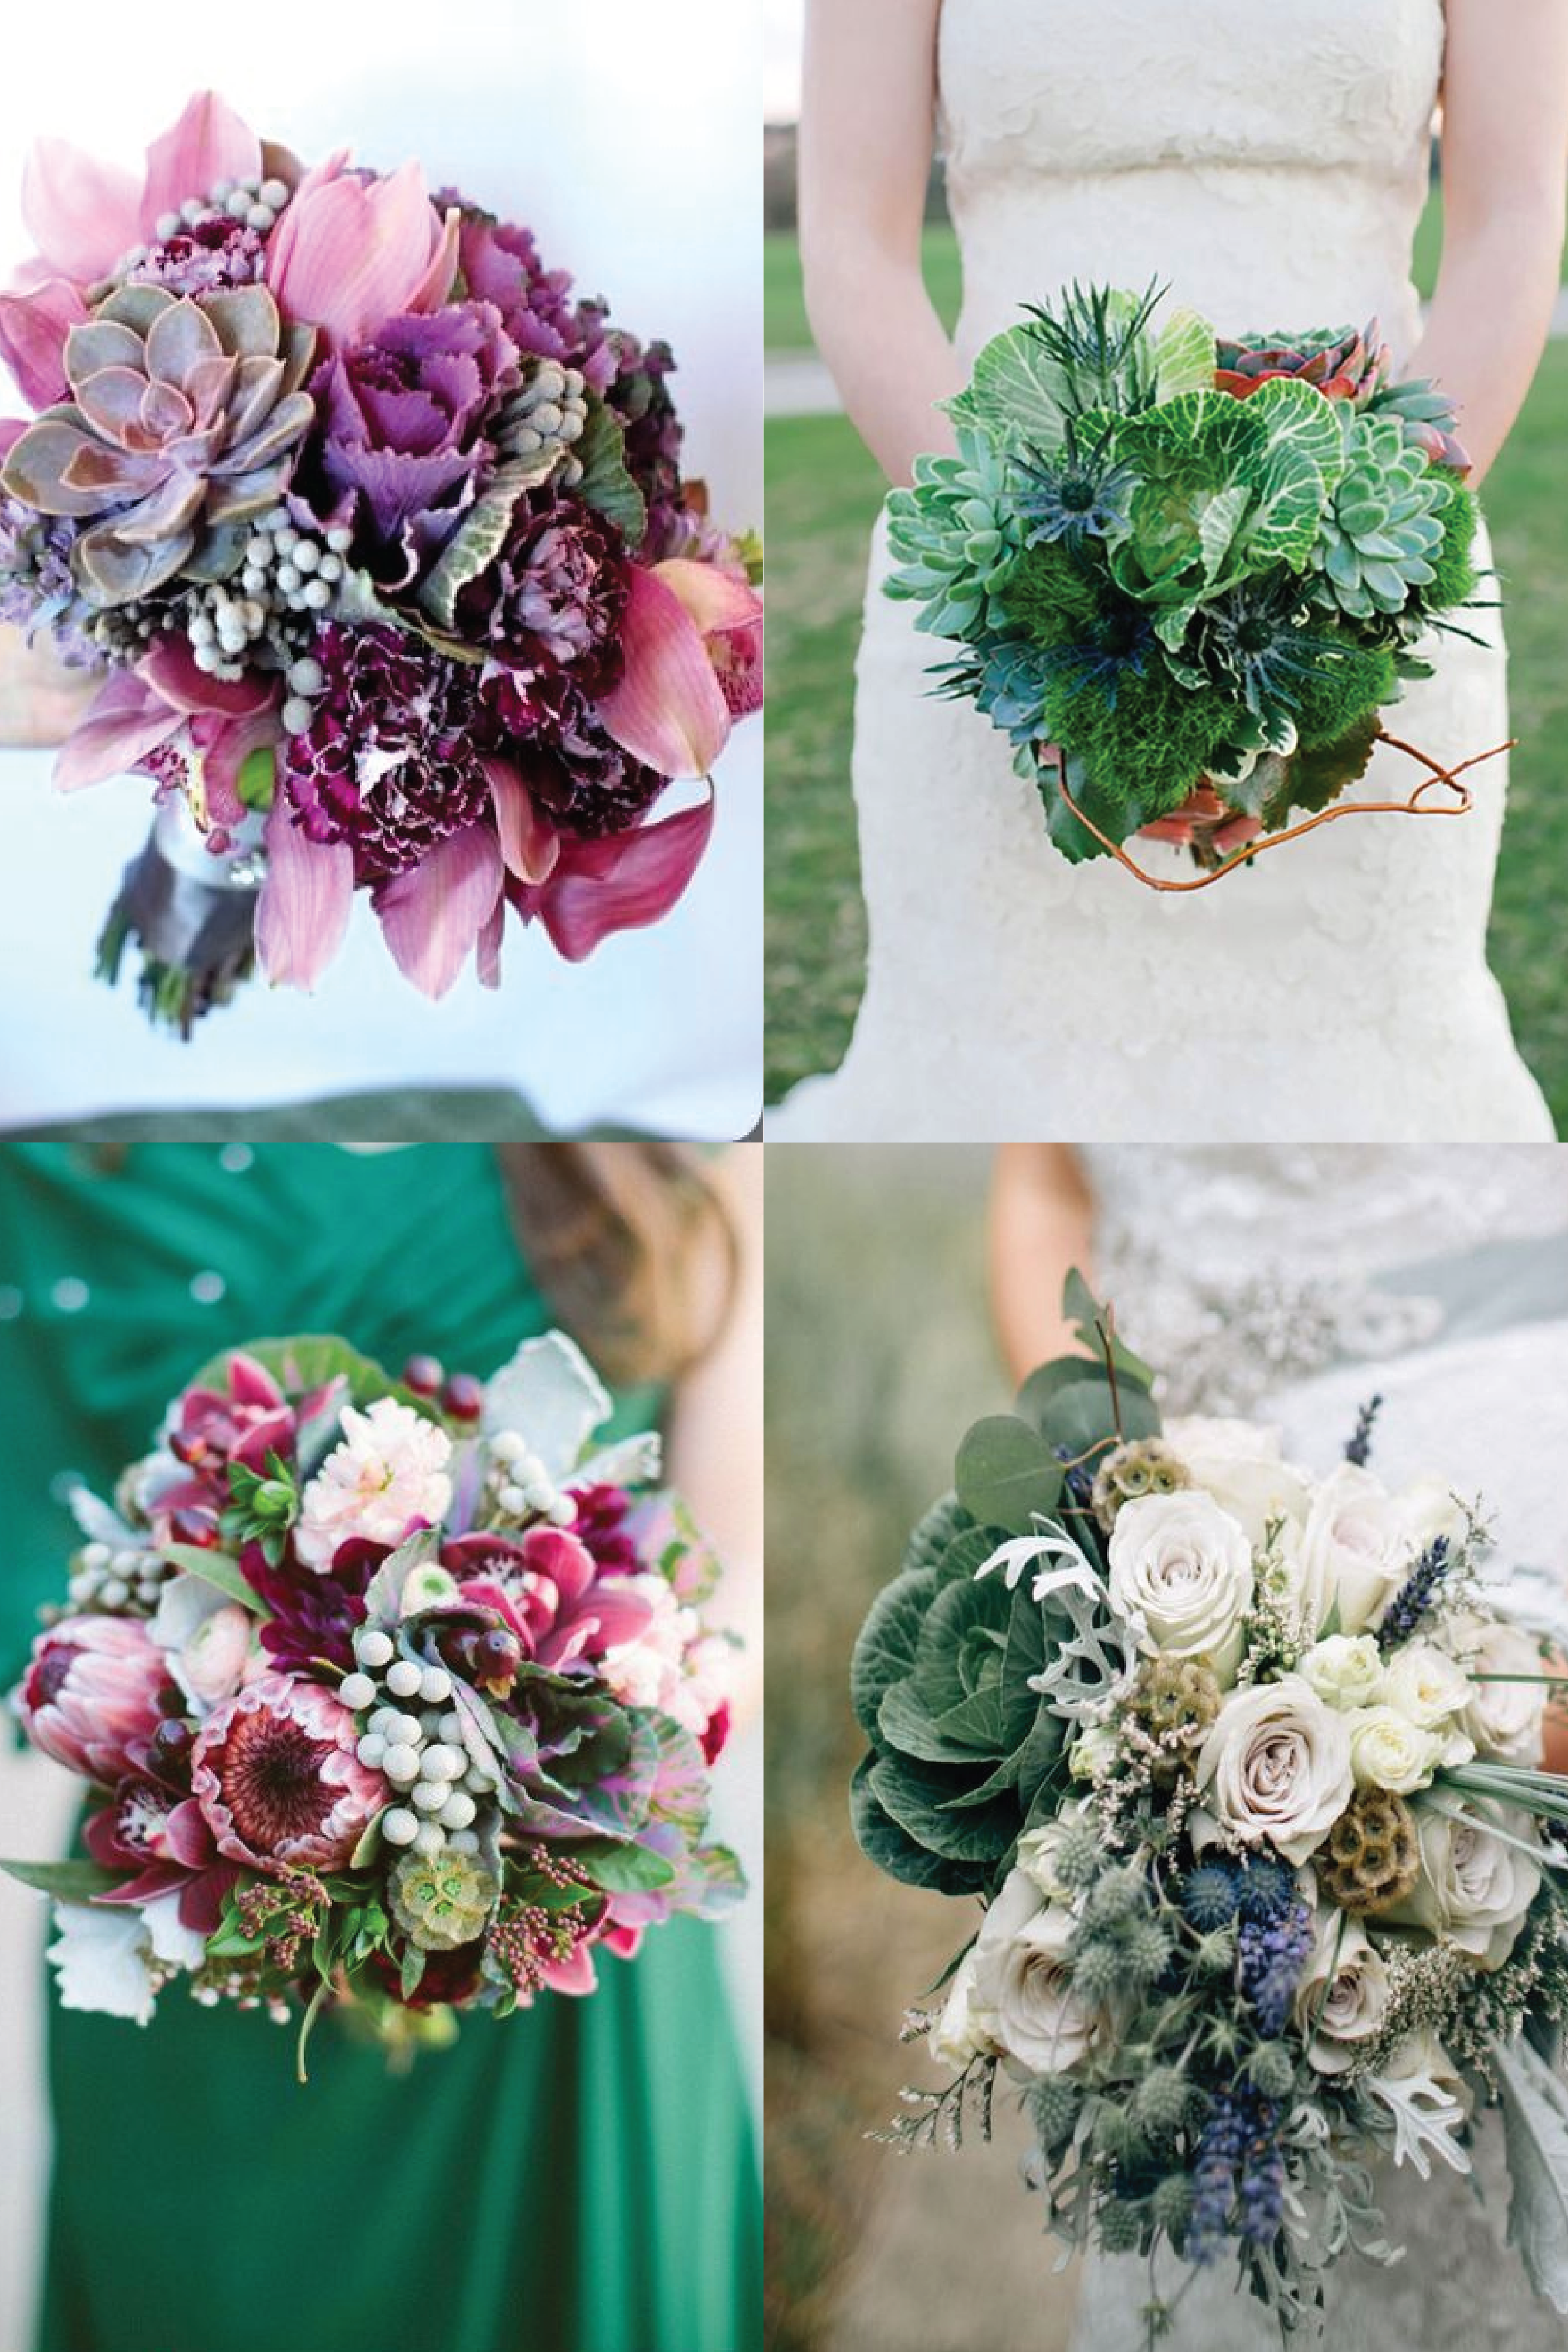 From clockwise, from top left:  flowers by  Lush Couture Design ; photo by  Elissar ; flowers by  Spellbound Flowers  and photo by  Bethany Small ; photo via  Intimate Weddings .